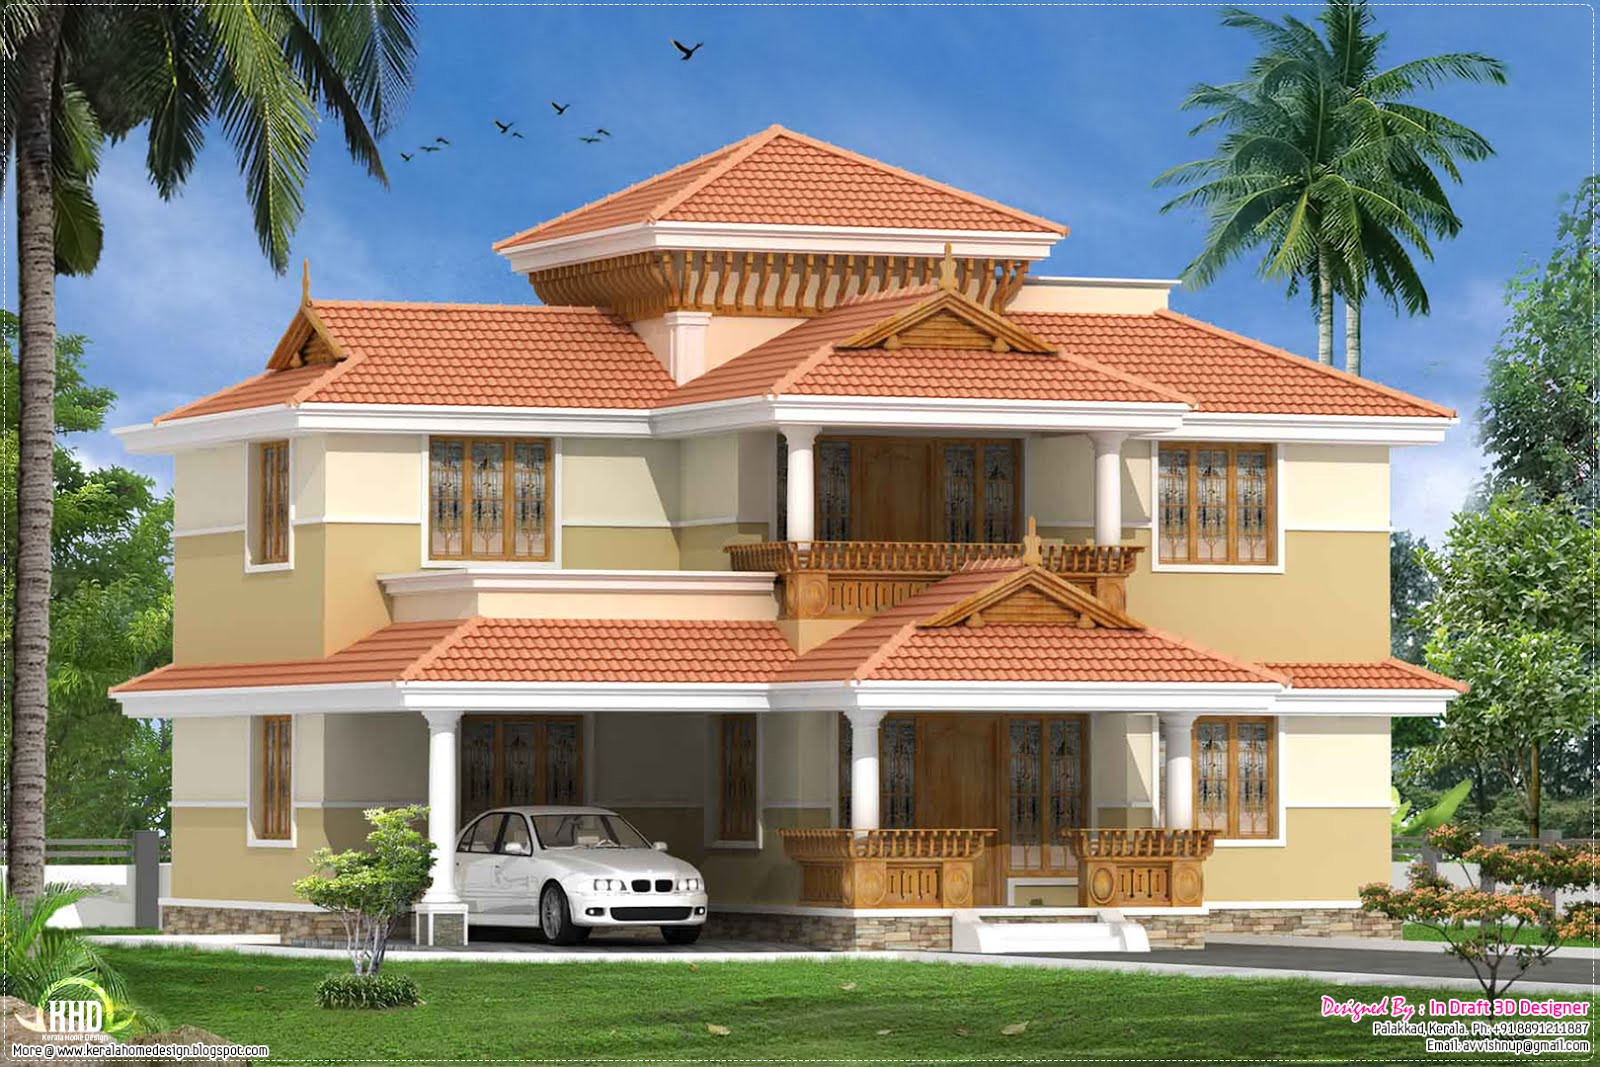 Kerala traditional 4 bed room villa 2060 sq.feet